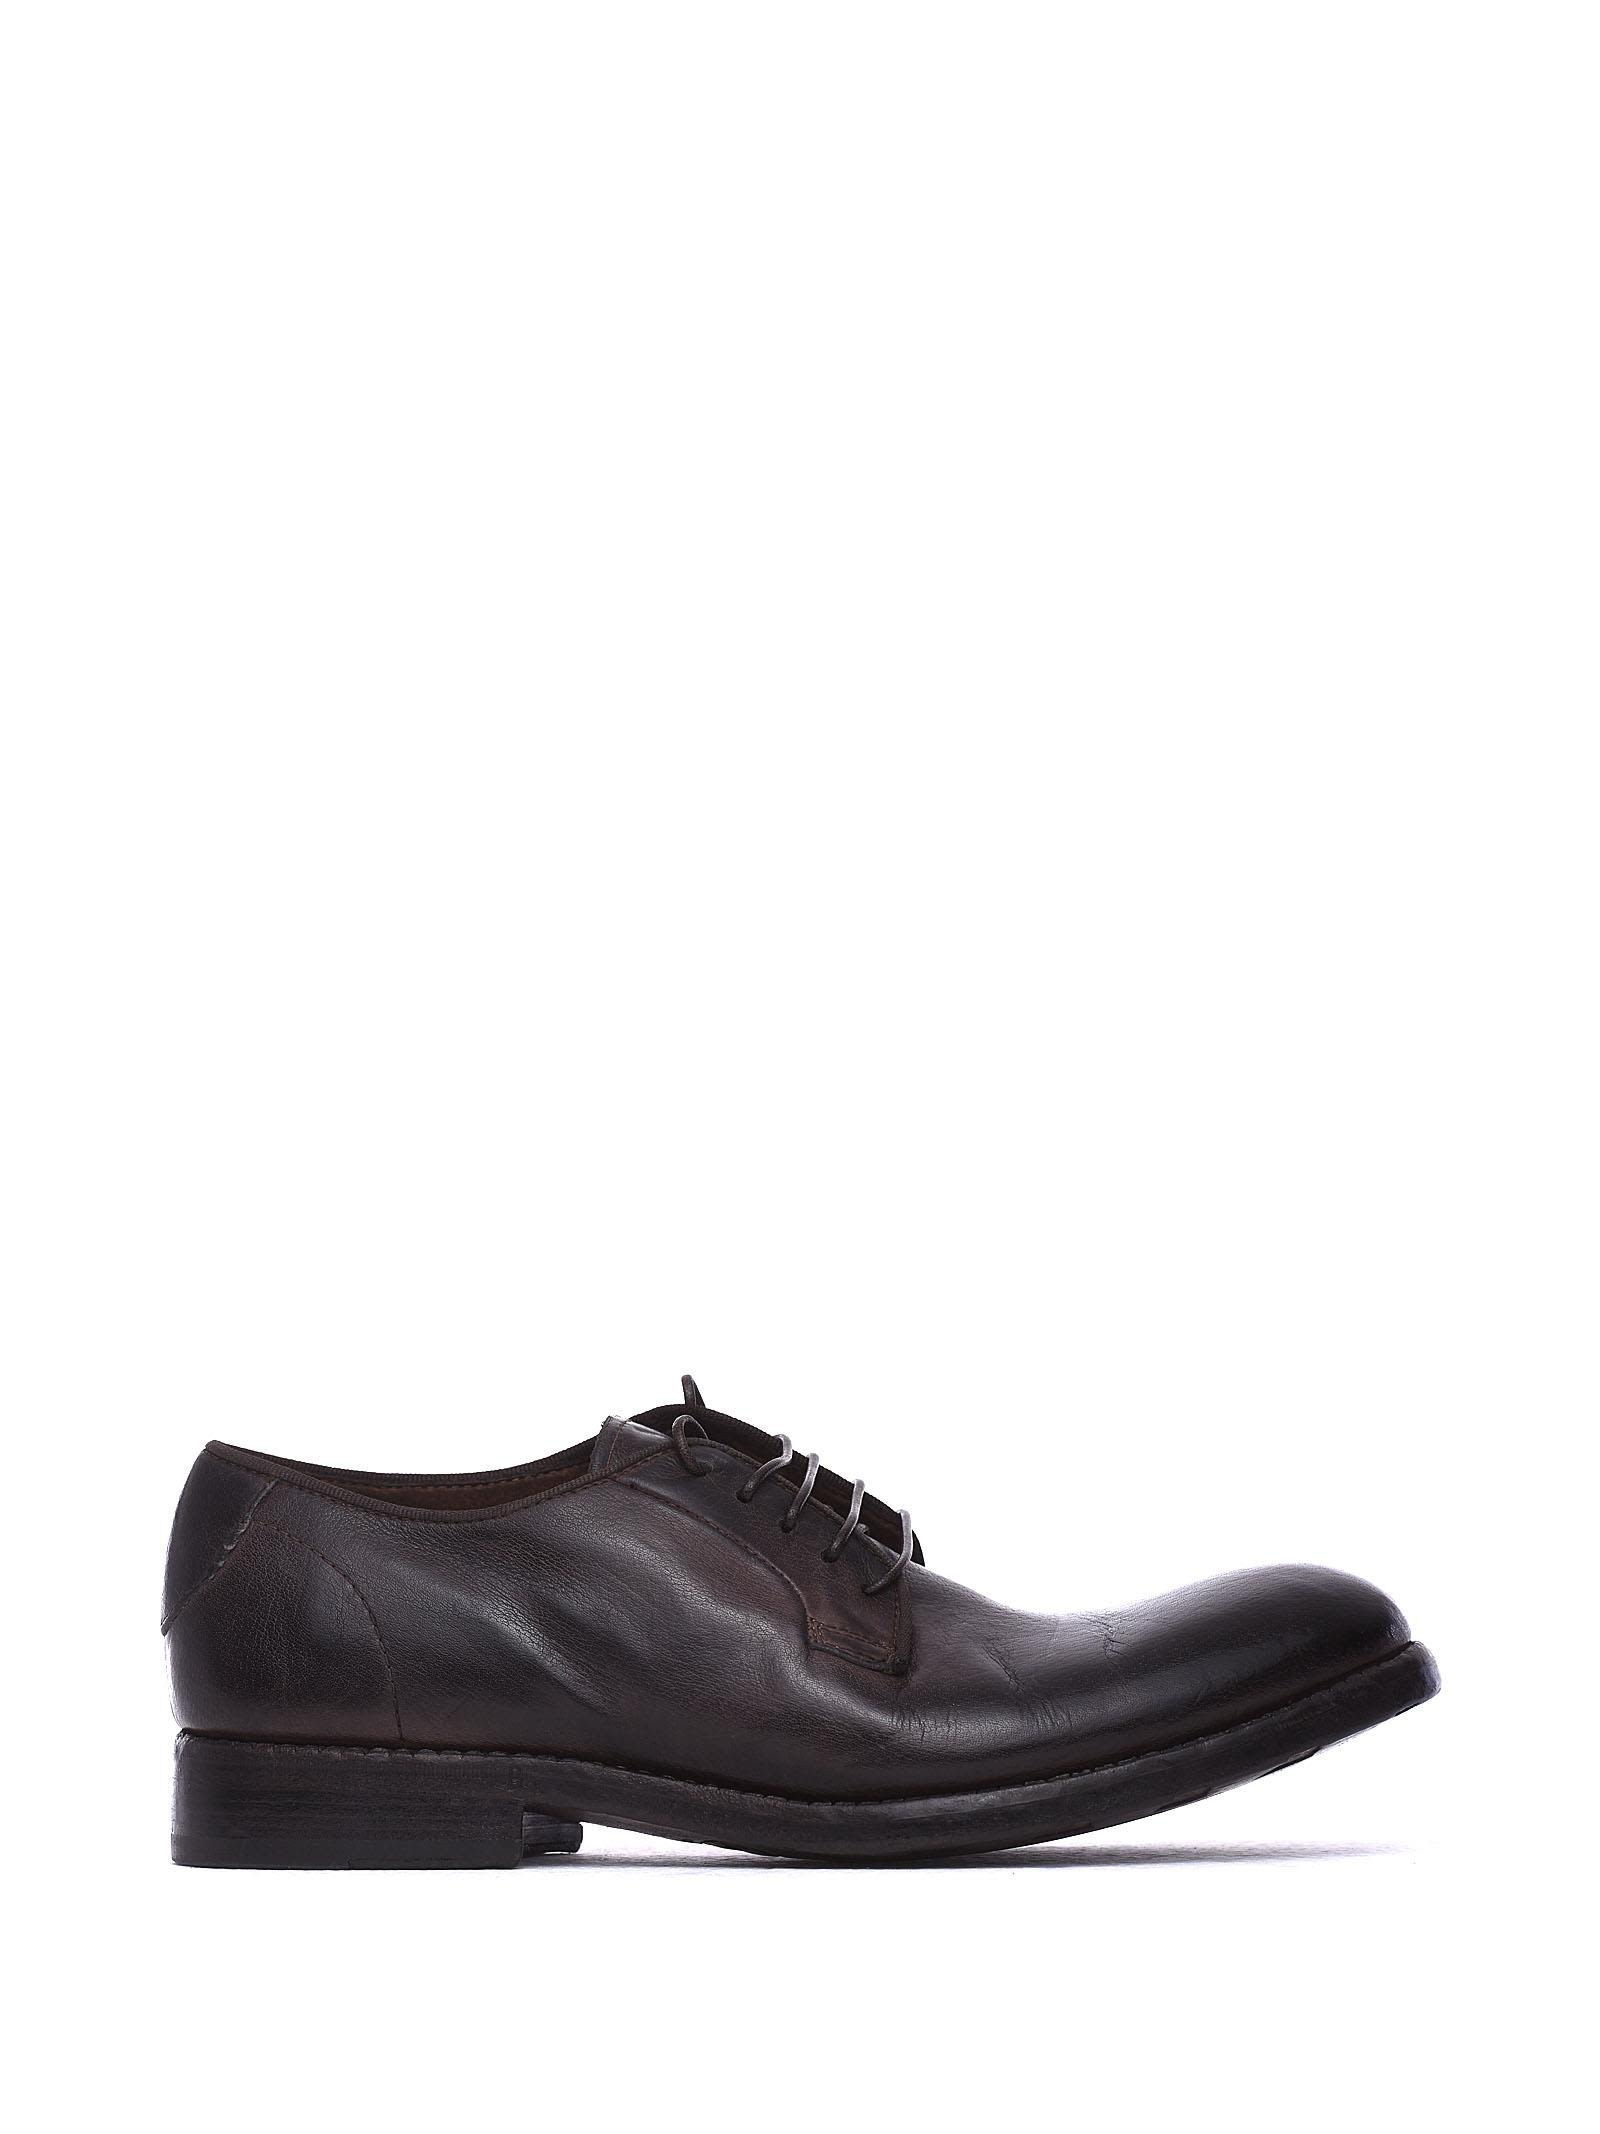 BARRACUDA Lace-Up Shoes In Black Vintage Effect Leather in Nero